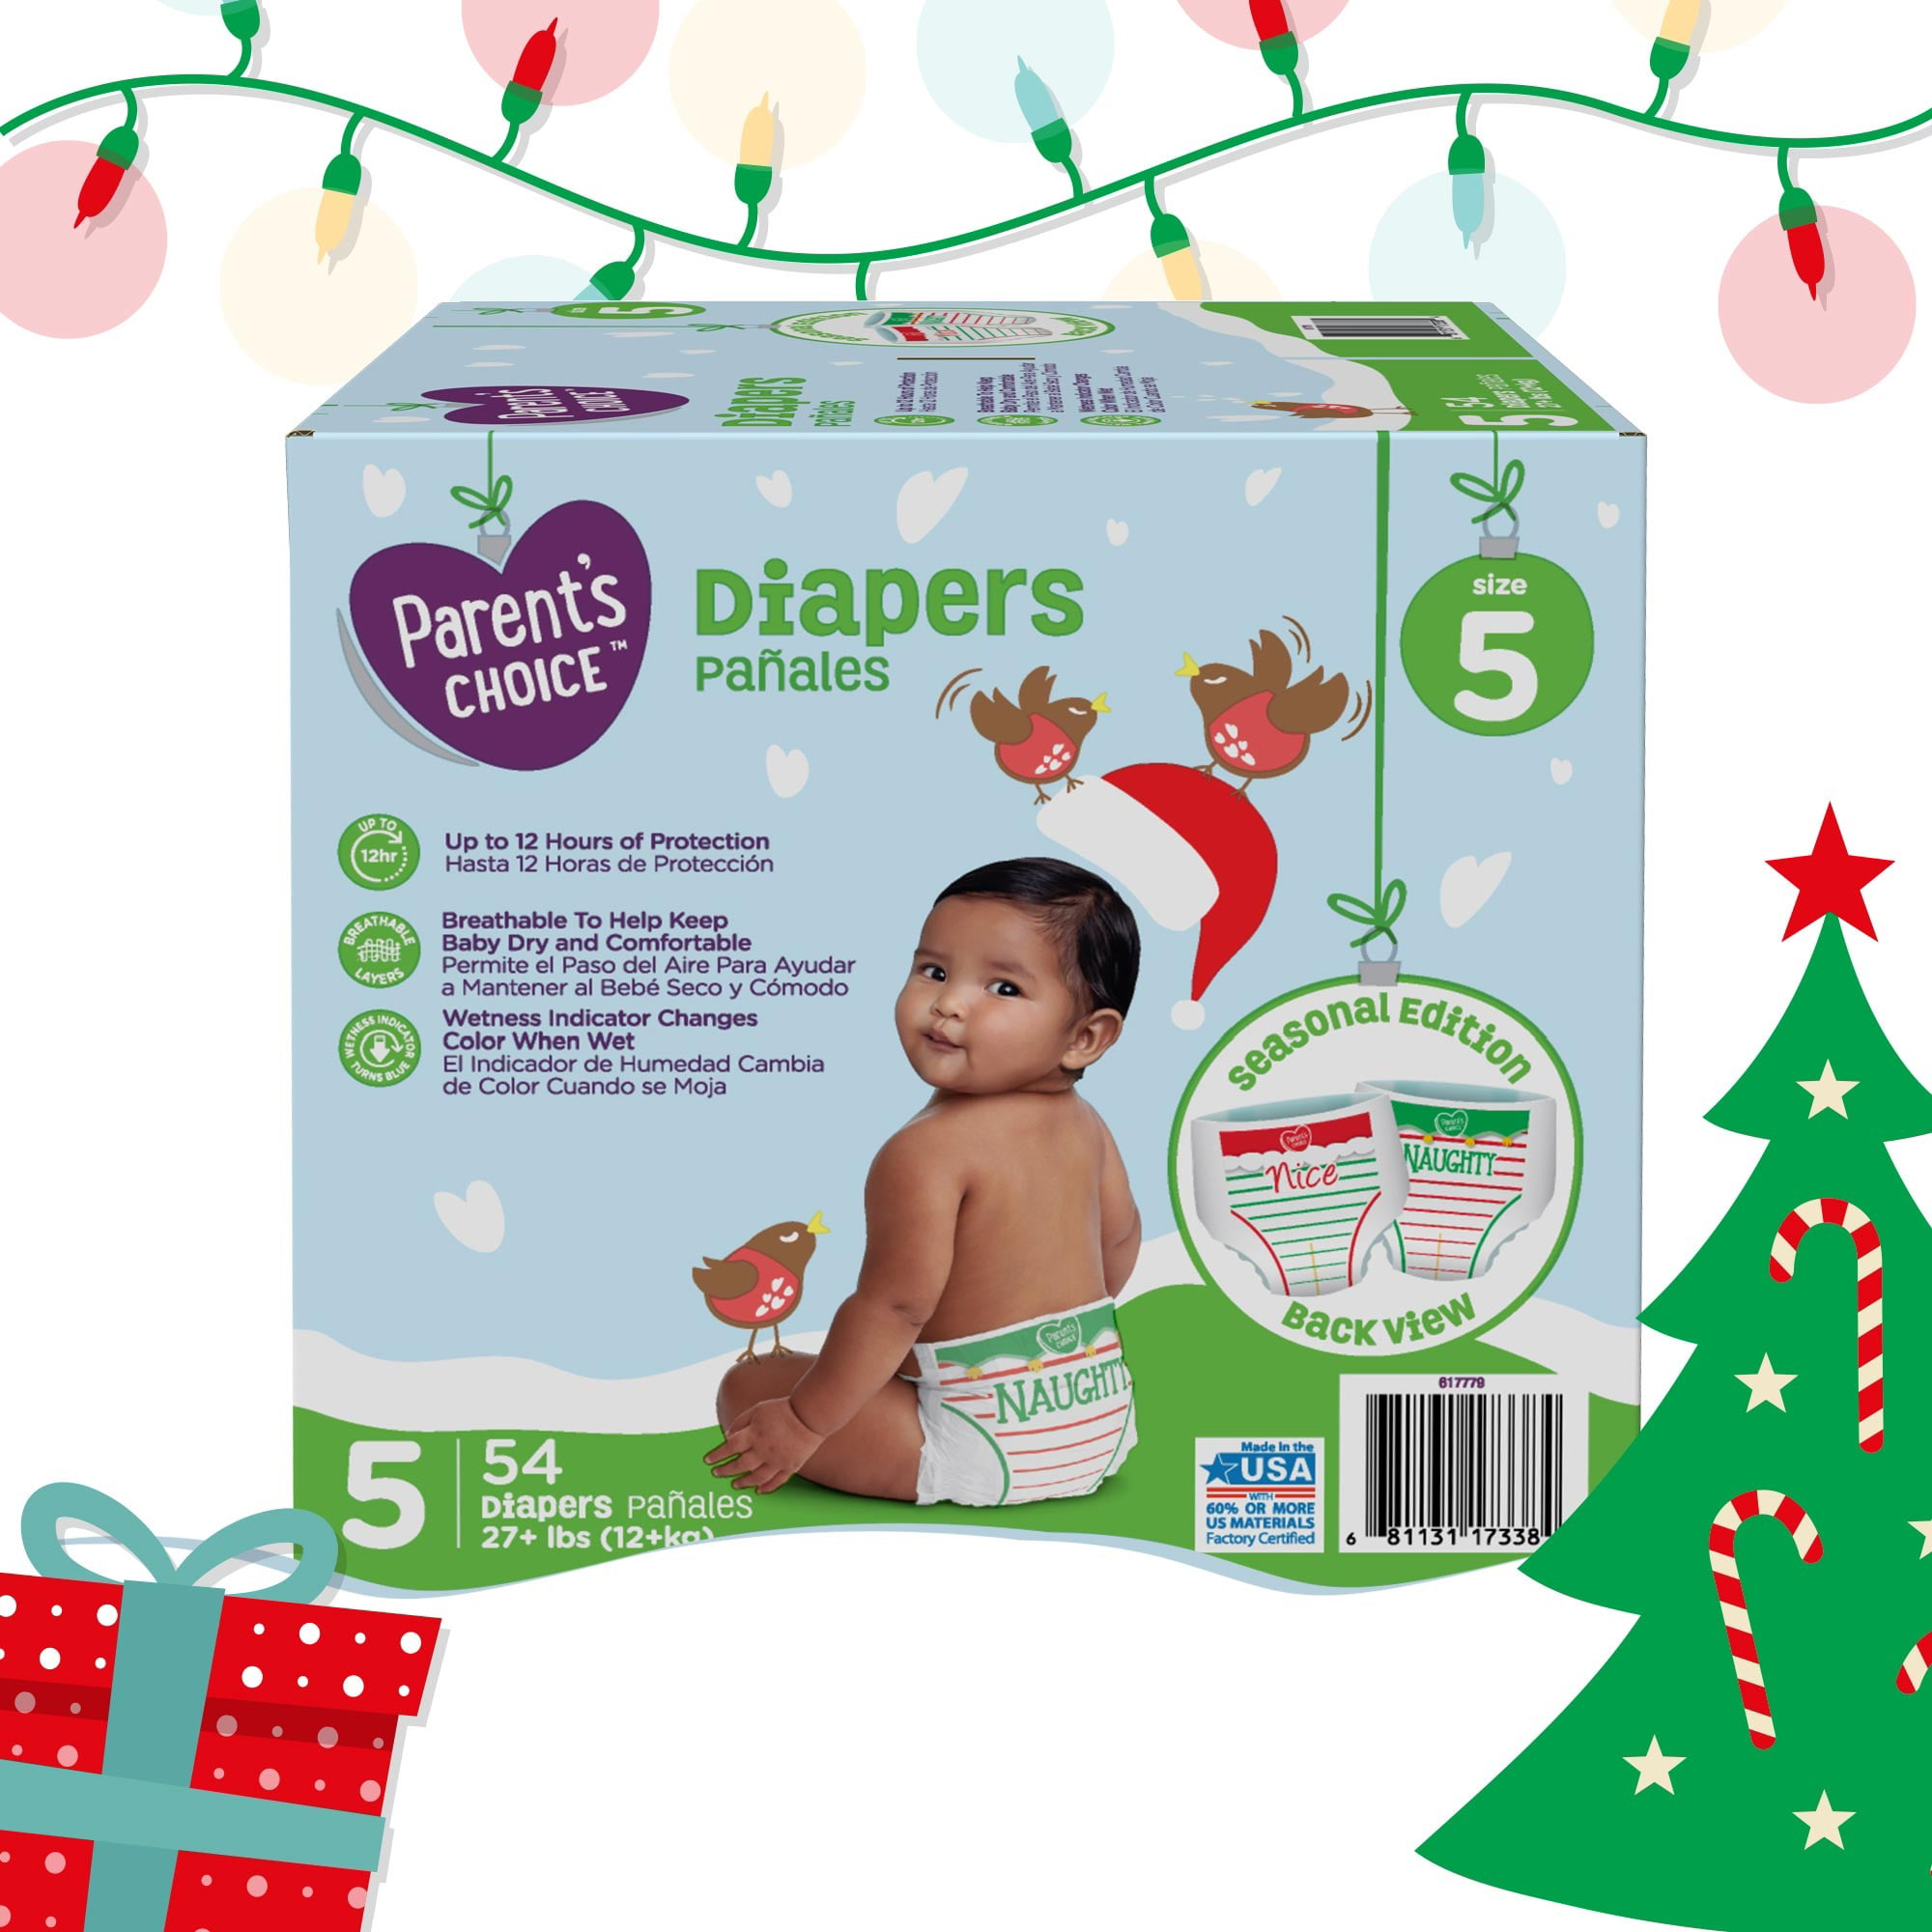 Parent's Choice Limited Edition Holiday Baby Diapers, Size 5, 54 Count